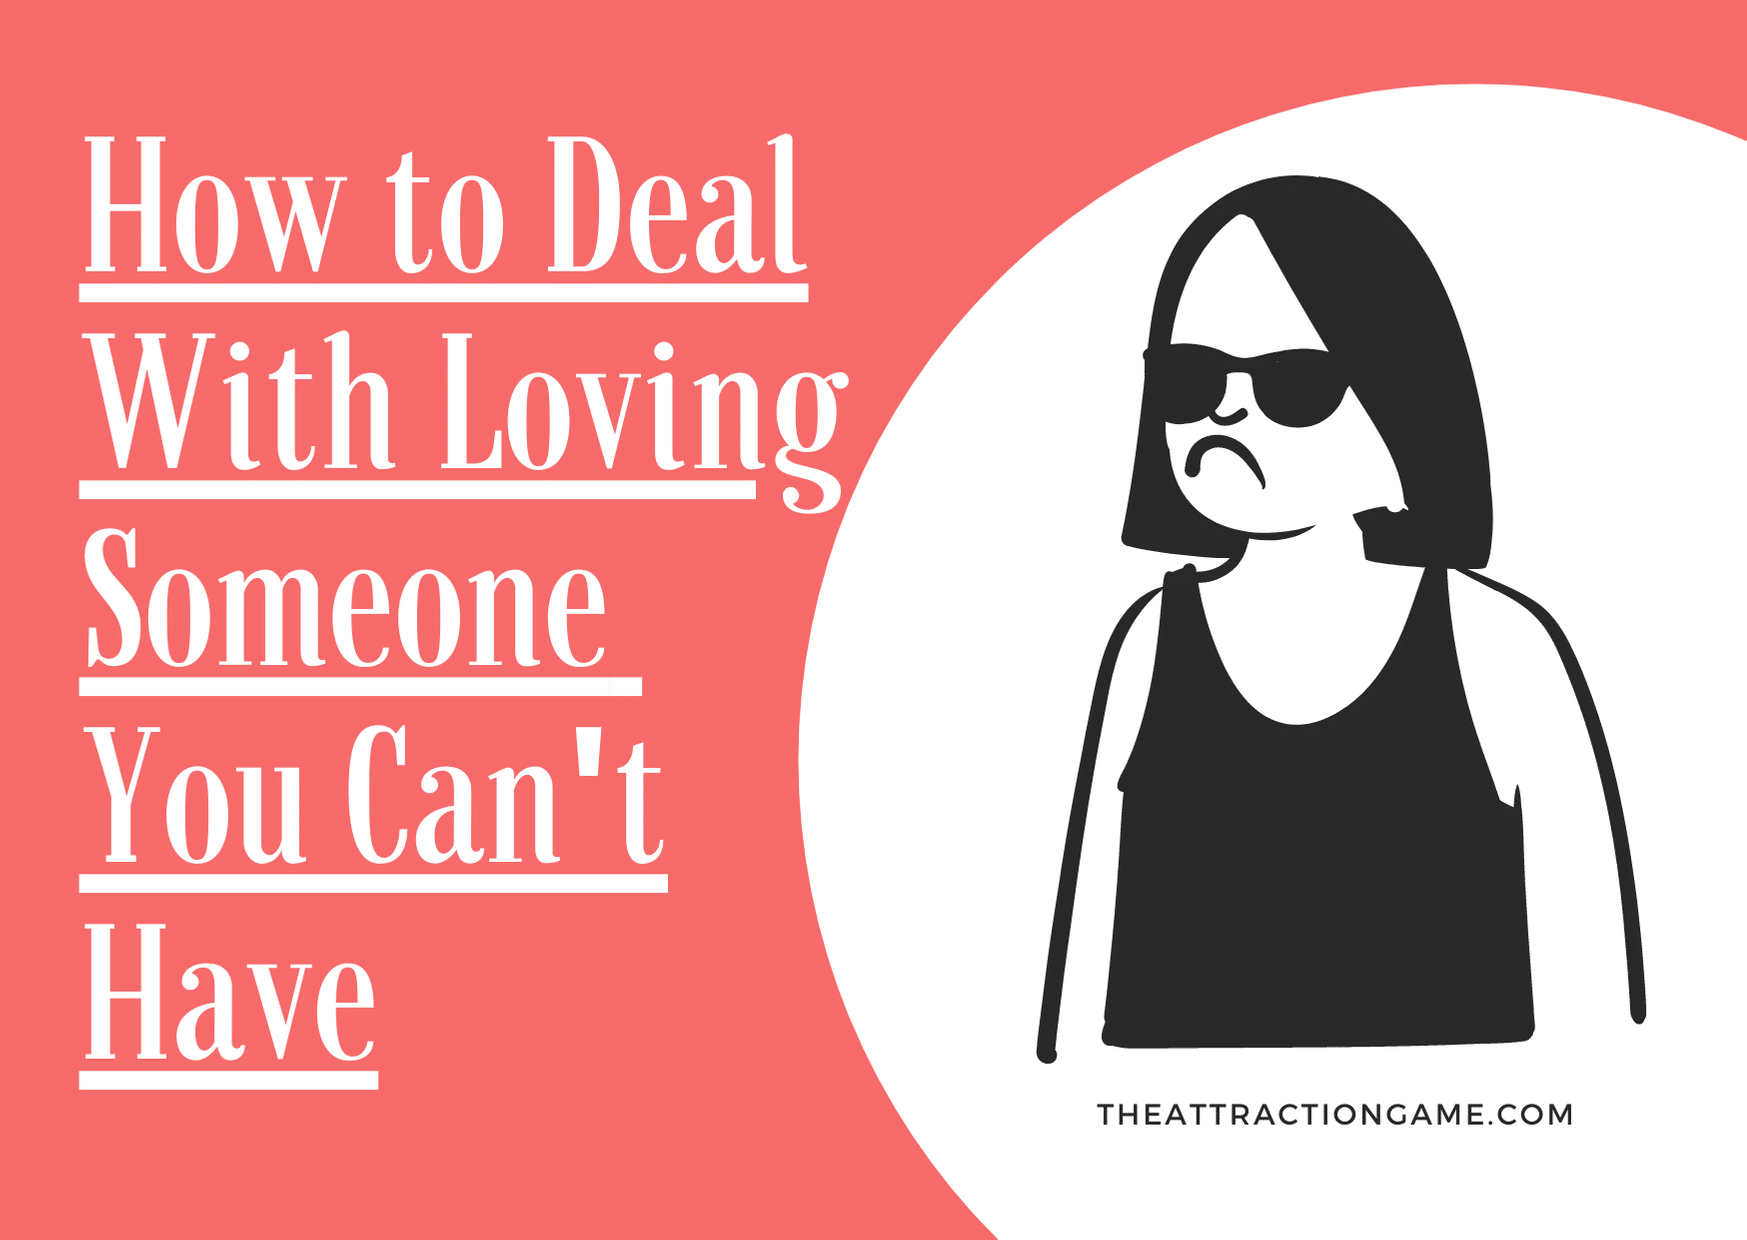 loving someone you can't be with, how to stop loving someone you can't be with, ways to stop loving someone, how to deal with loving someone you can't be with